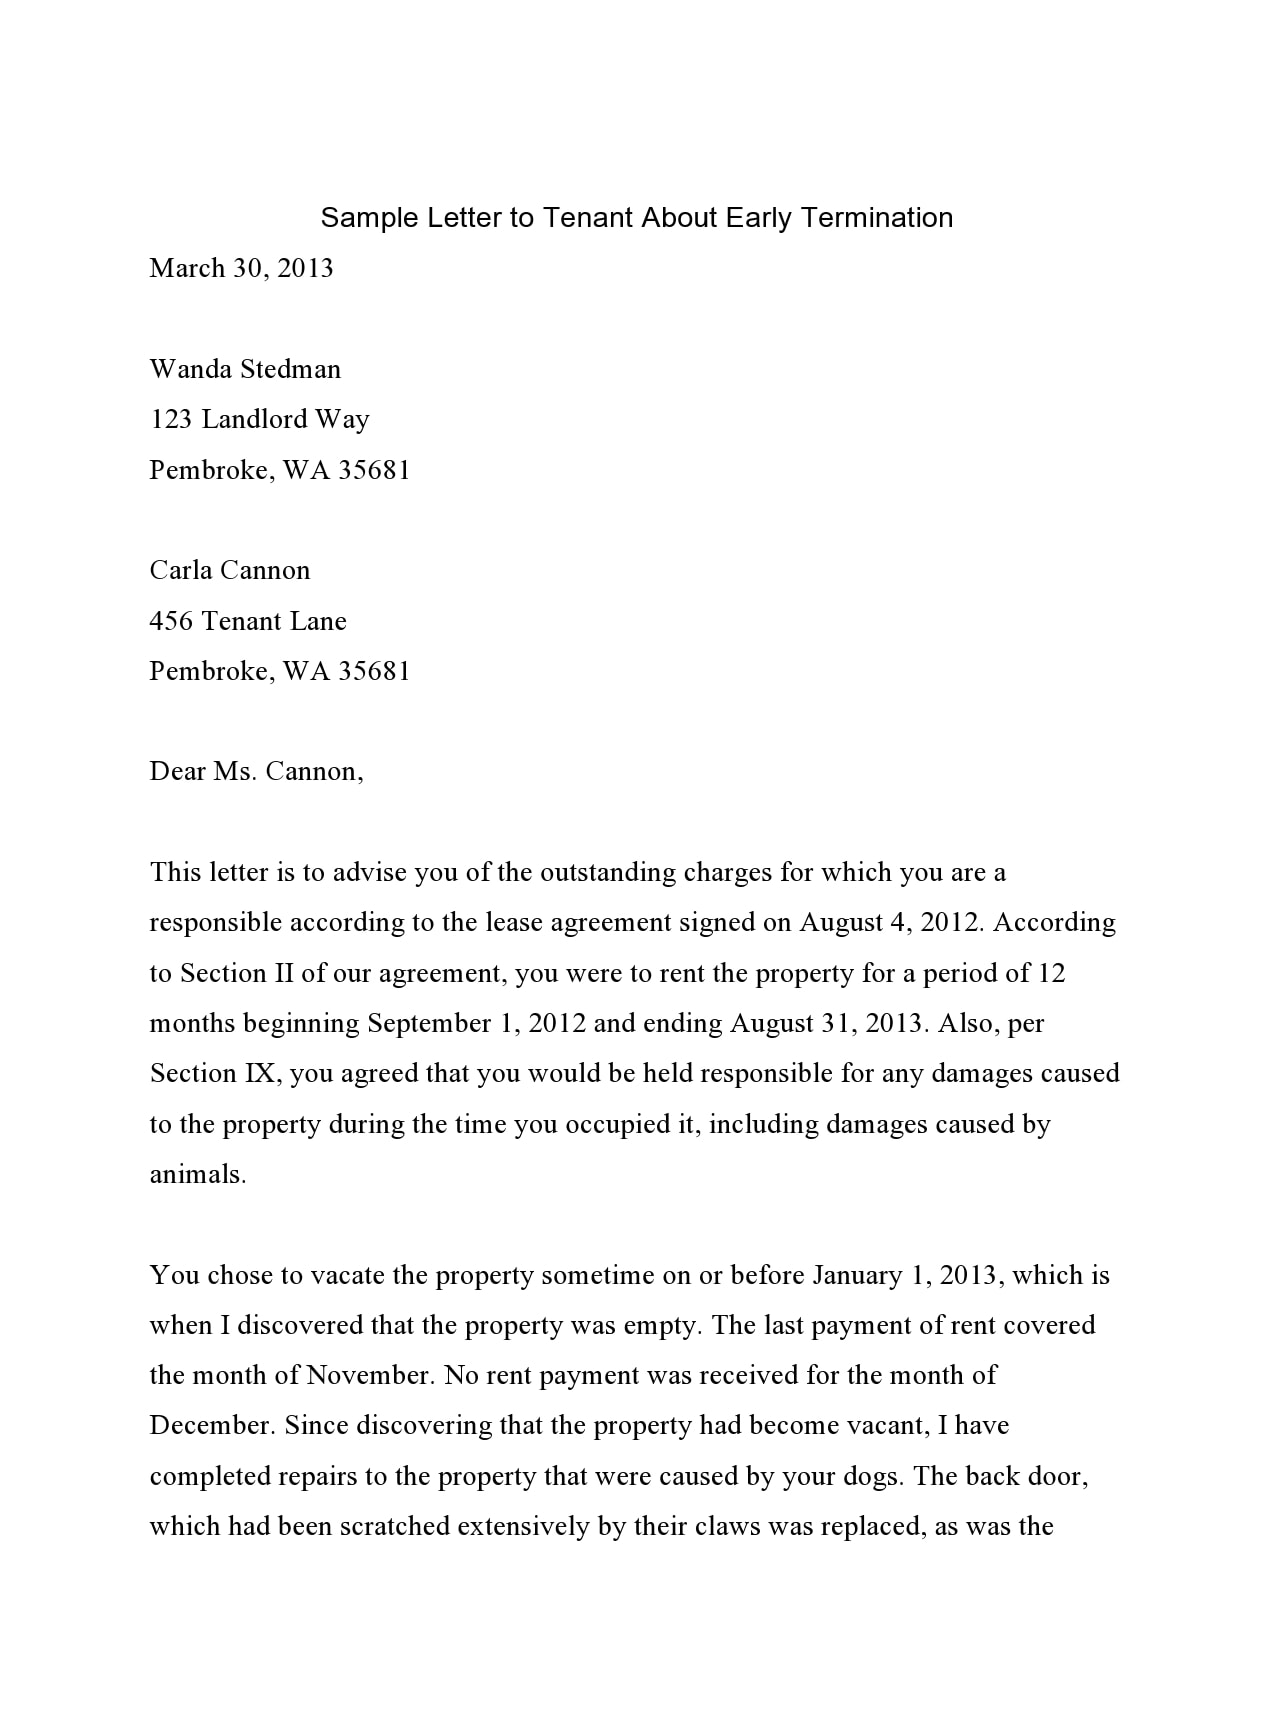 Termination Of Lease Letter To Tenant from templatearchive.com